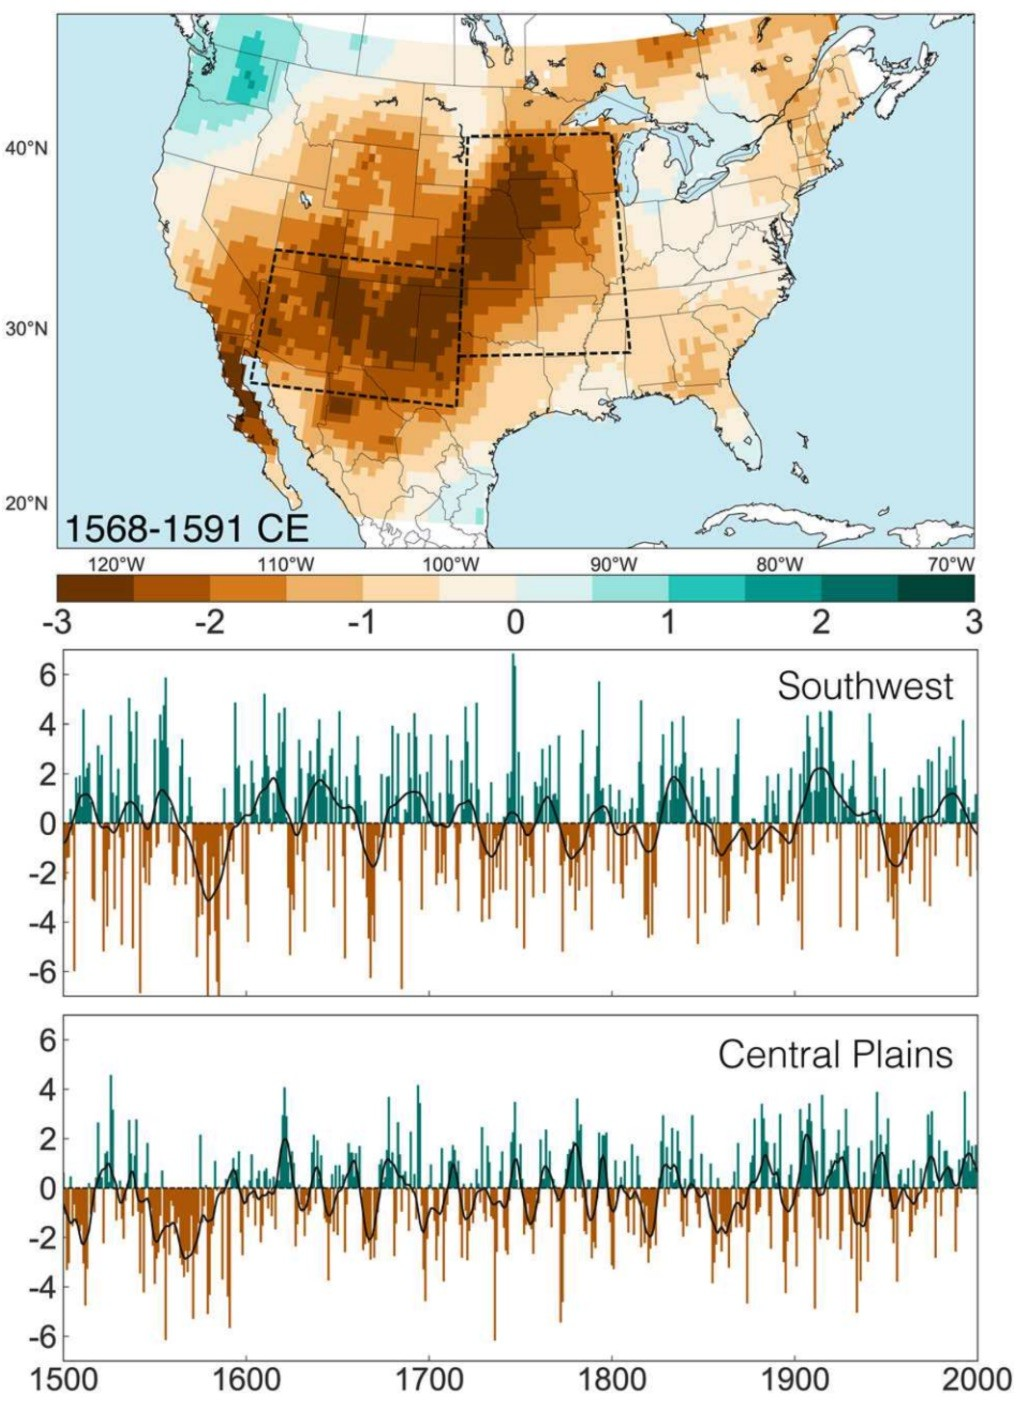 Summer (June-July-August) drought anomalies (Palmer DroughtSeverity Index) from the latest version of the North American Drought Atlas for the late 16th-century.